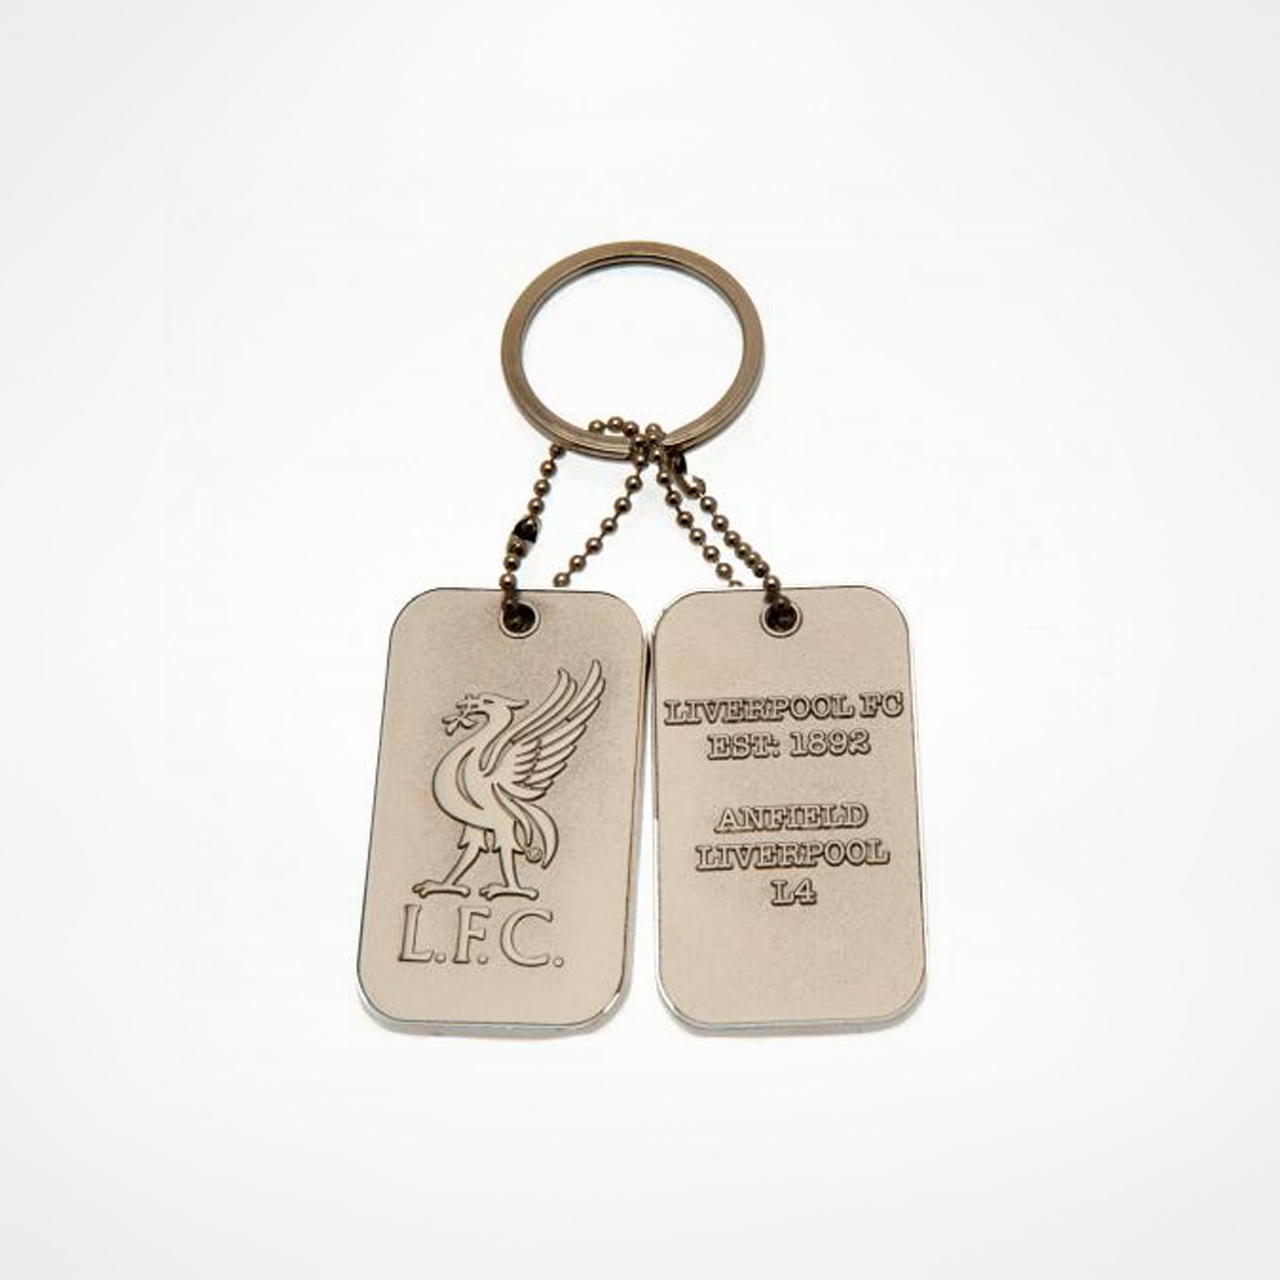 Liverpool Fc Dog Tag Keyring Supporters Placesta